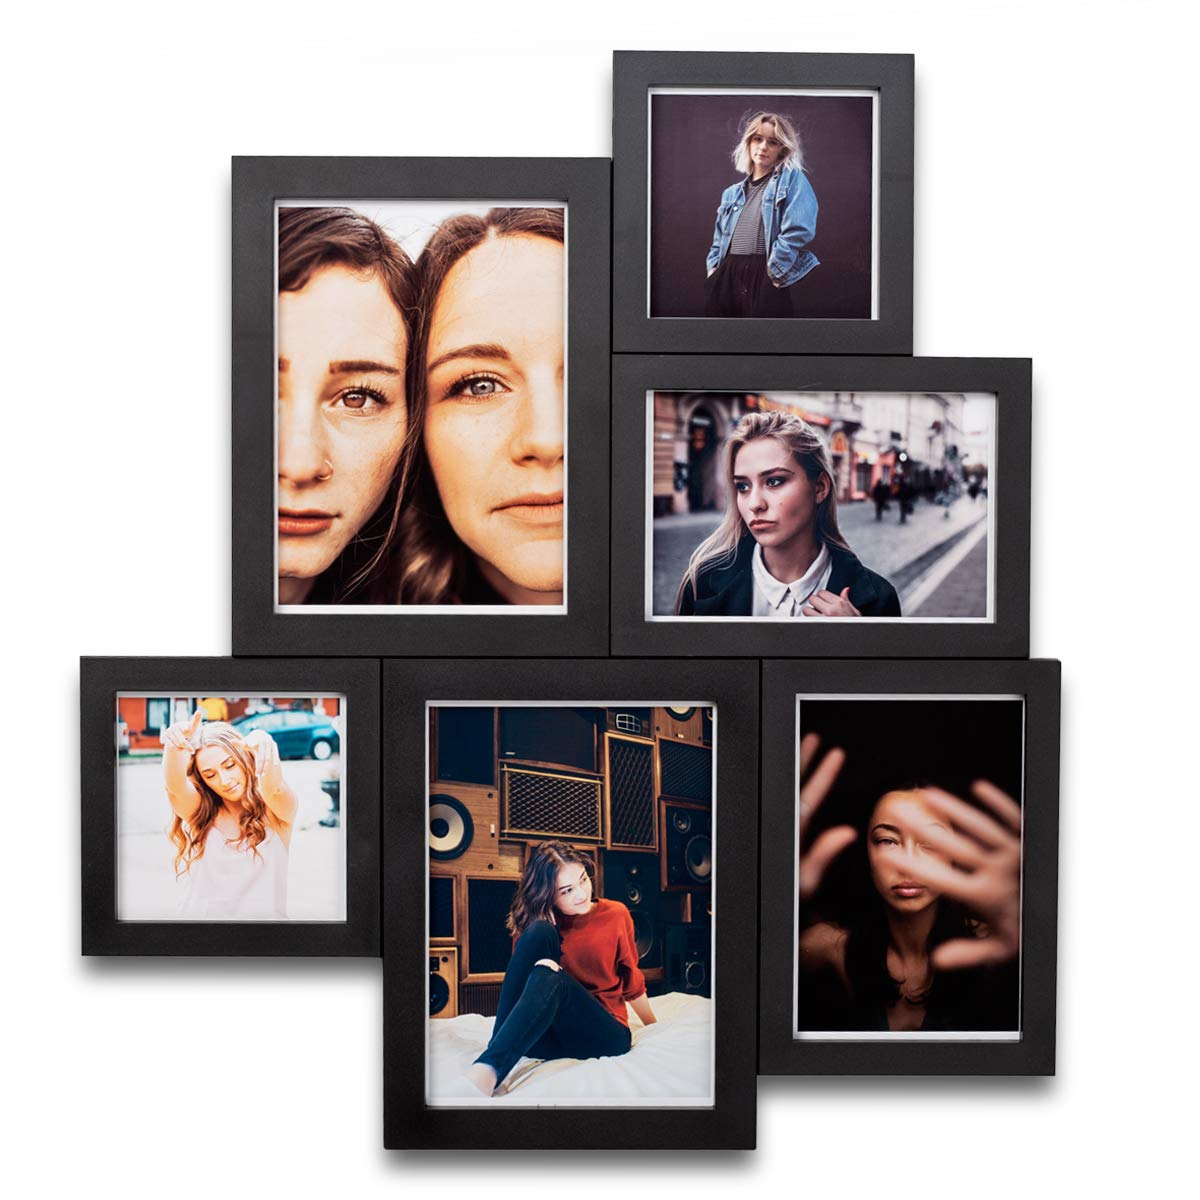 MAGNAFRAME - Multipack Magnetic Picture Frame Gallery (4x4, 4x6 & 5x7) - 6 Pack (Black)